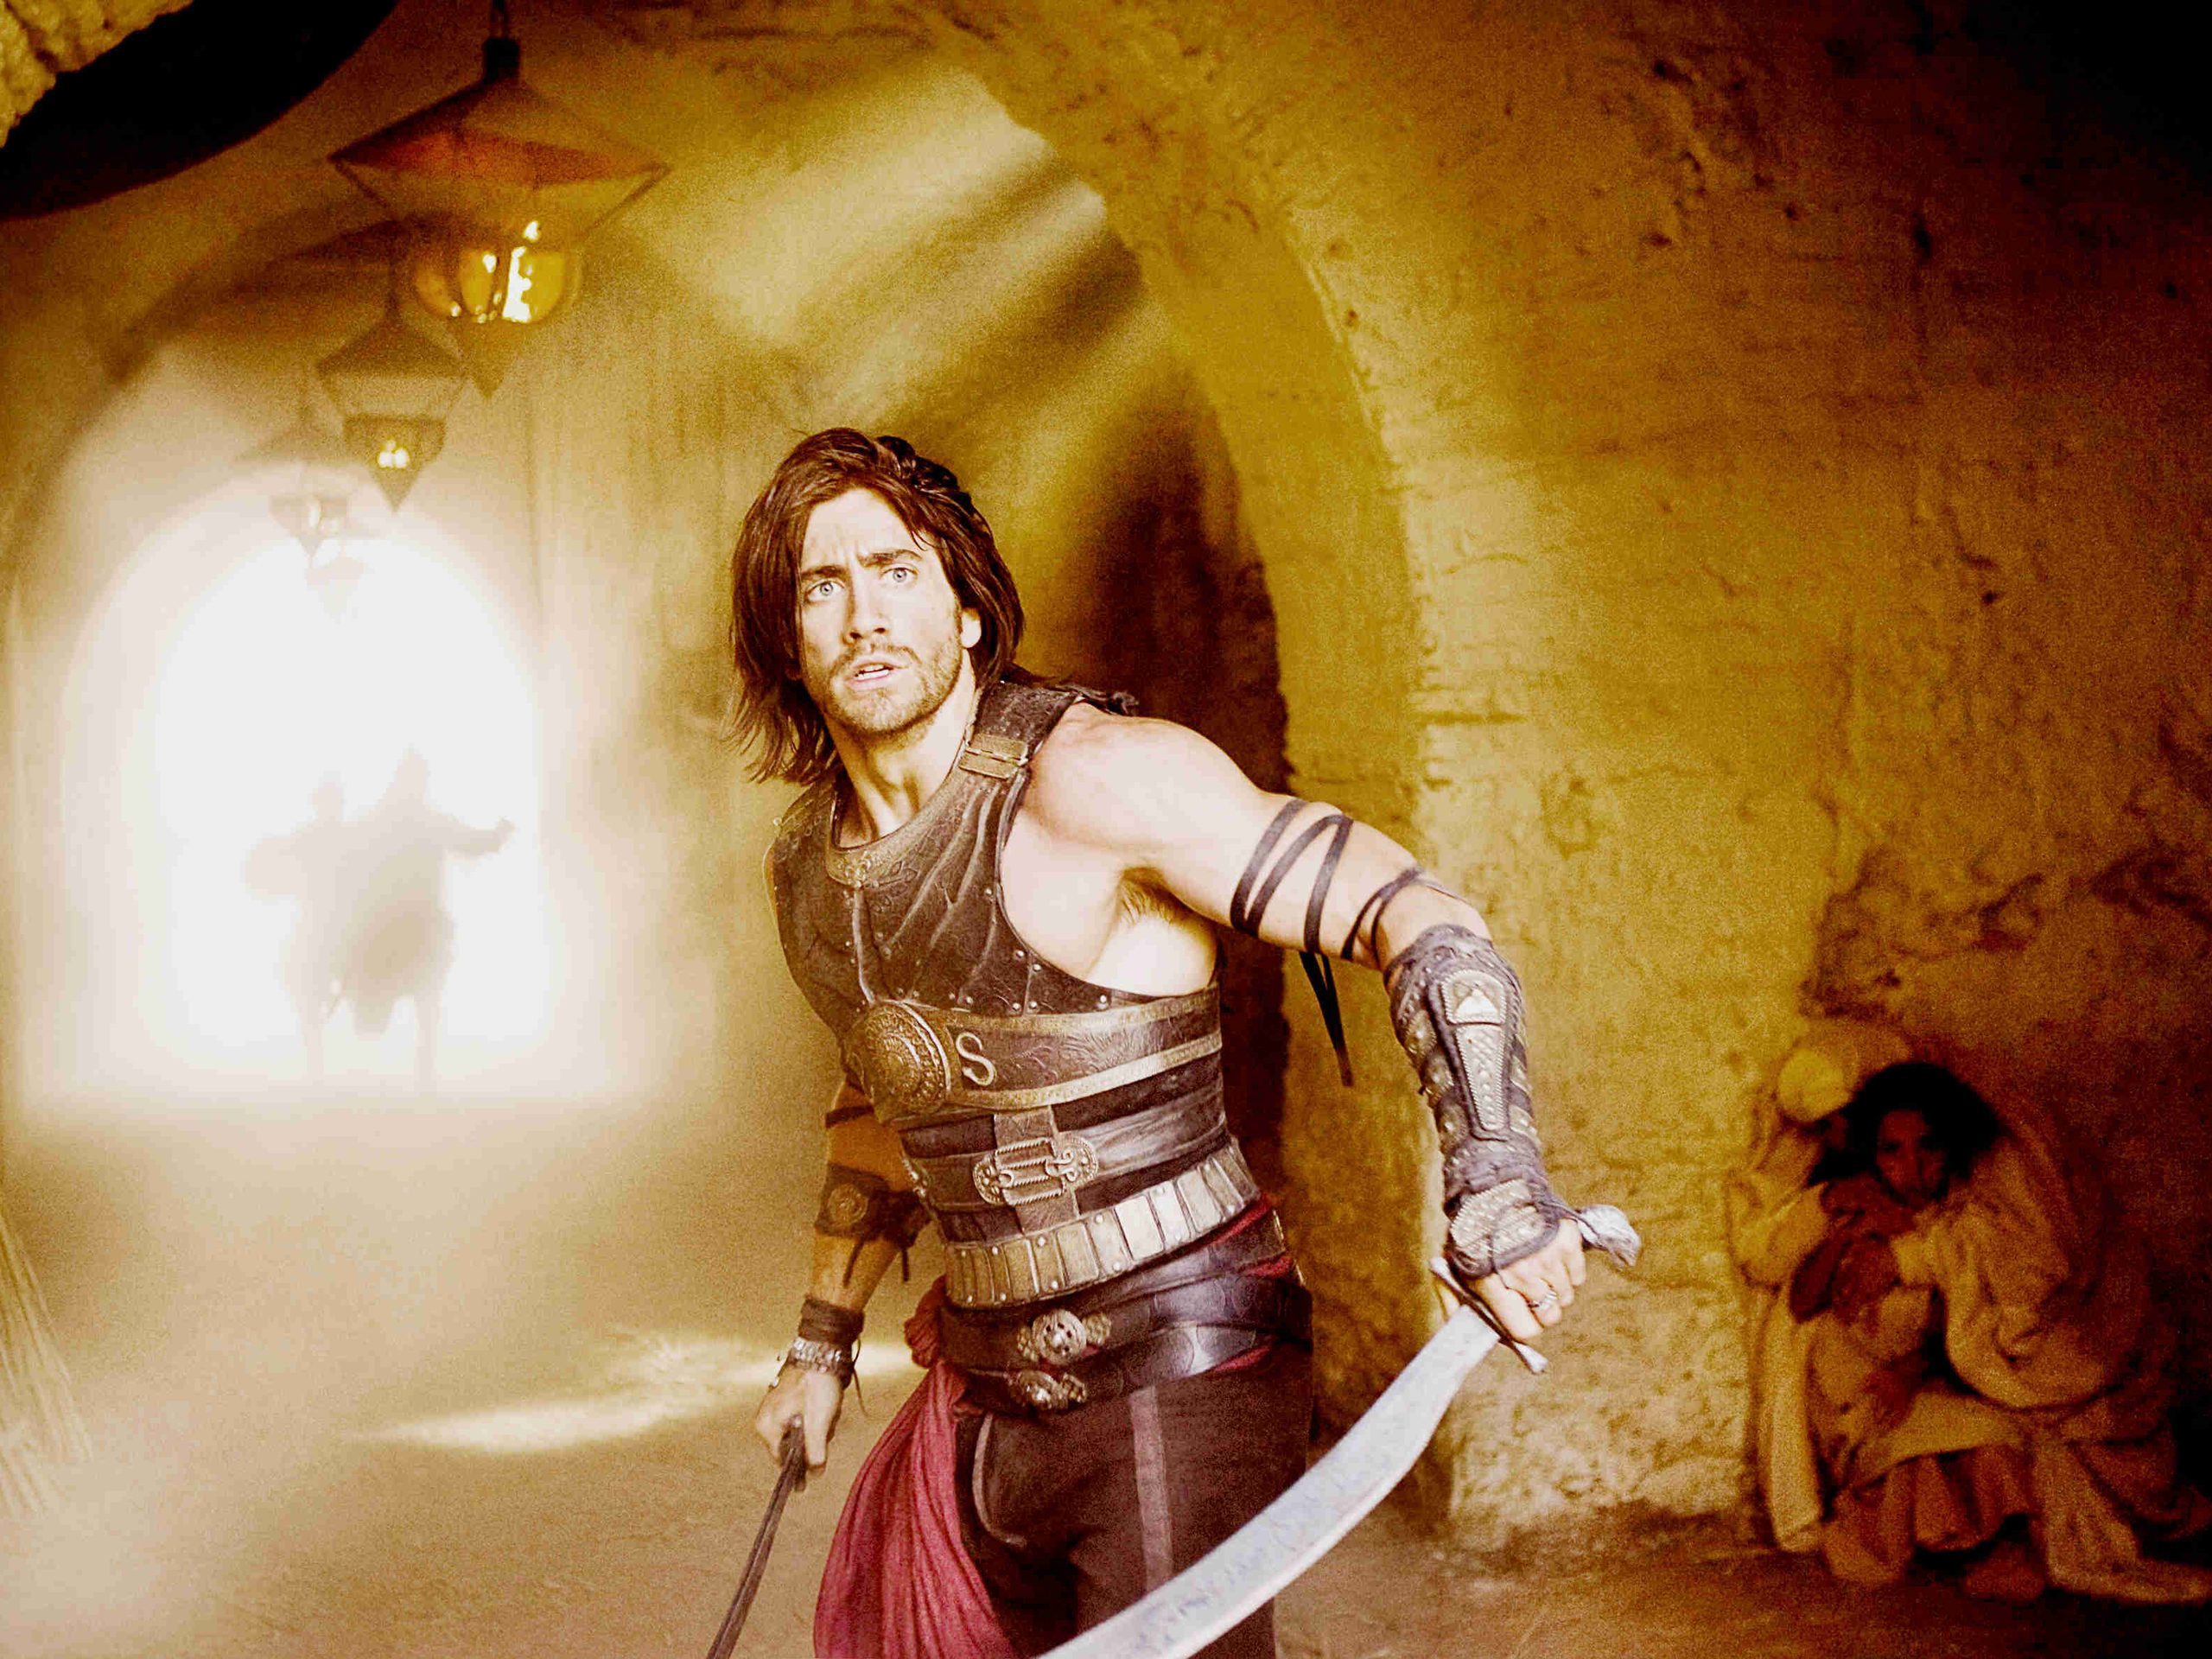 Prince Of Persia: The Sands Of Time, Movies, Jake ... |Prince Of Persia Movie Wallpapers